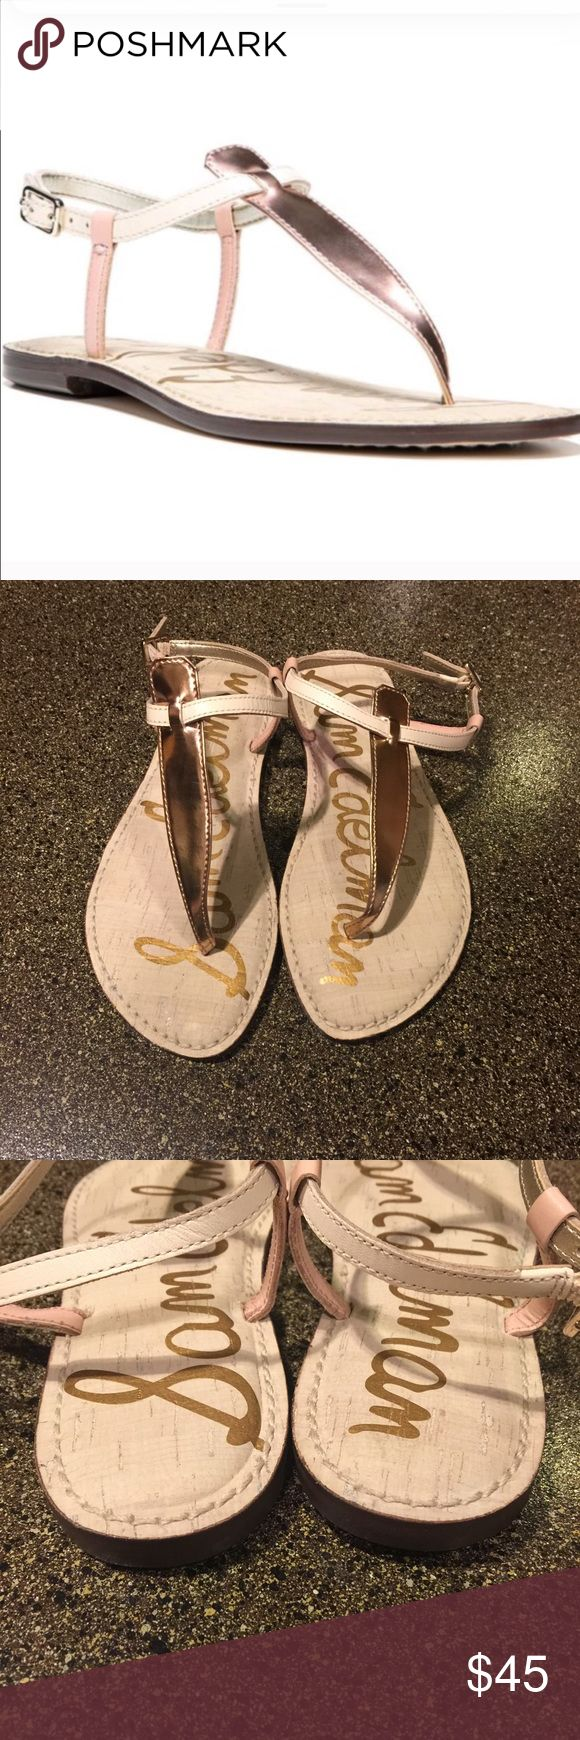 NWOT Sam Edelman Gigi Sandals Rose Gold & Blush 7 NWOT Sam Edelman Gigi Sandals Rose Gold, Blush & Cream. Absolutely beautiful and comfortable! Sam Edelman Shoes Sandals